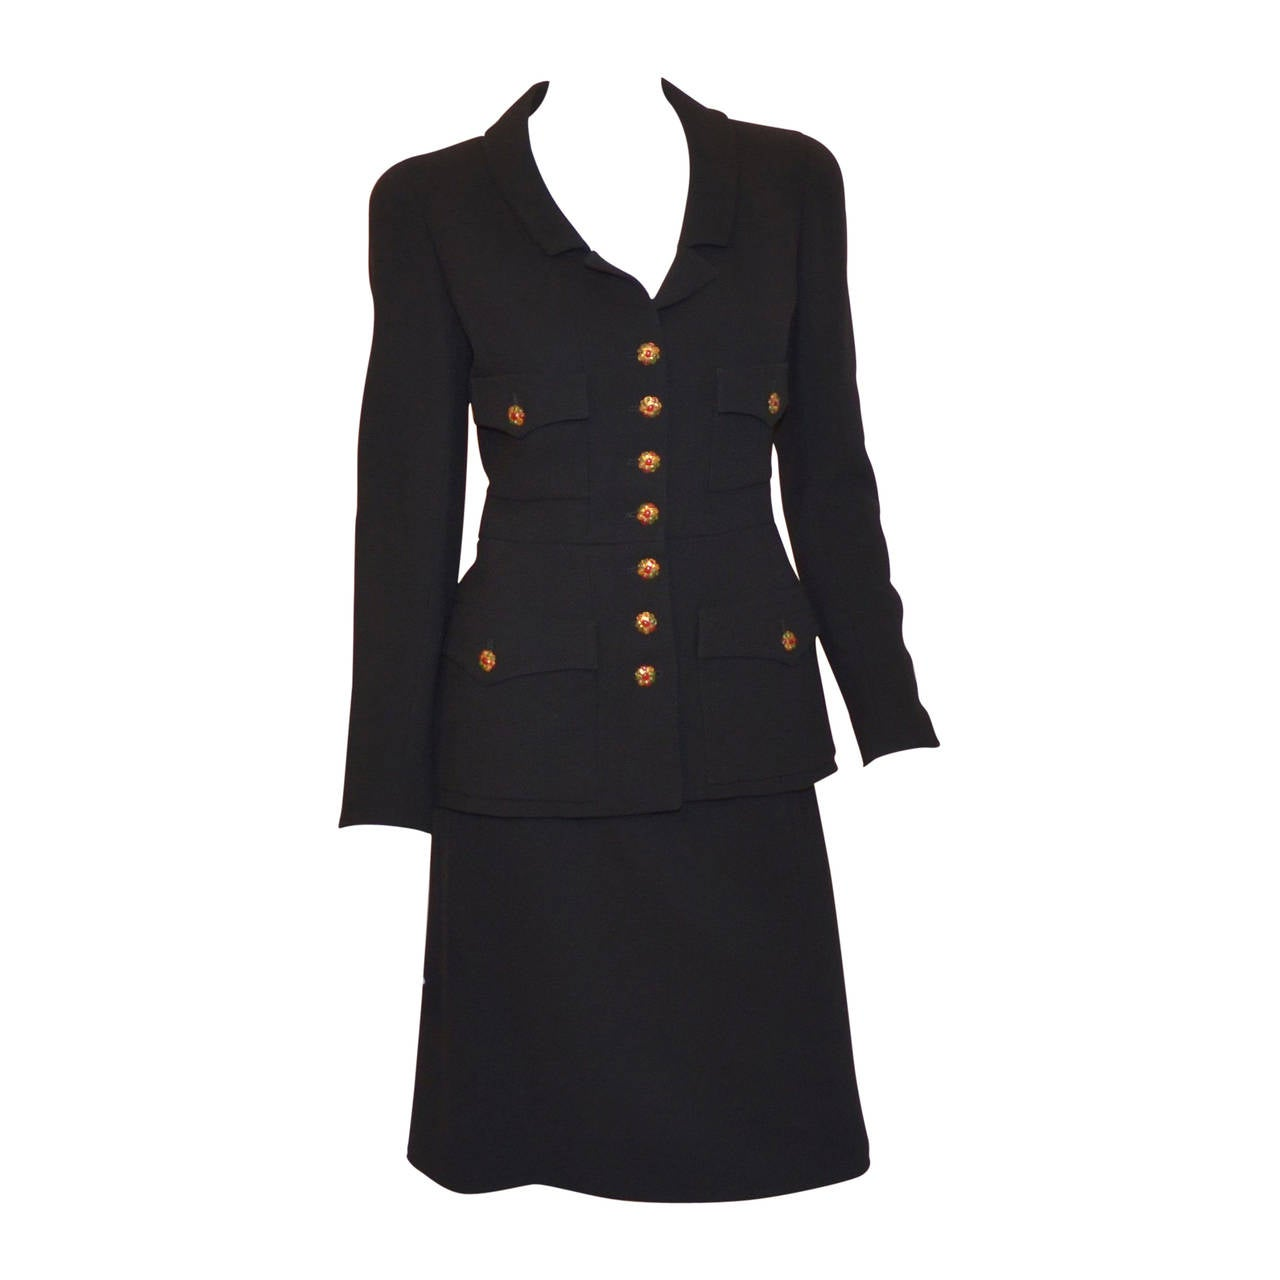 Chanel 1996 A Jacket Skirt Suit Gripoix Buttons For Sale